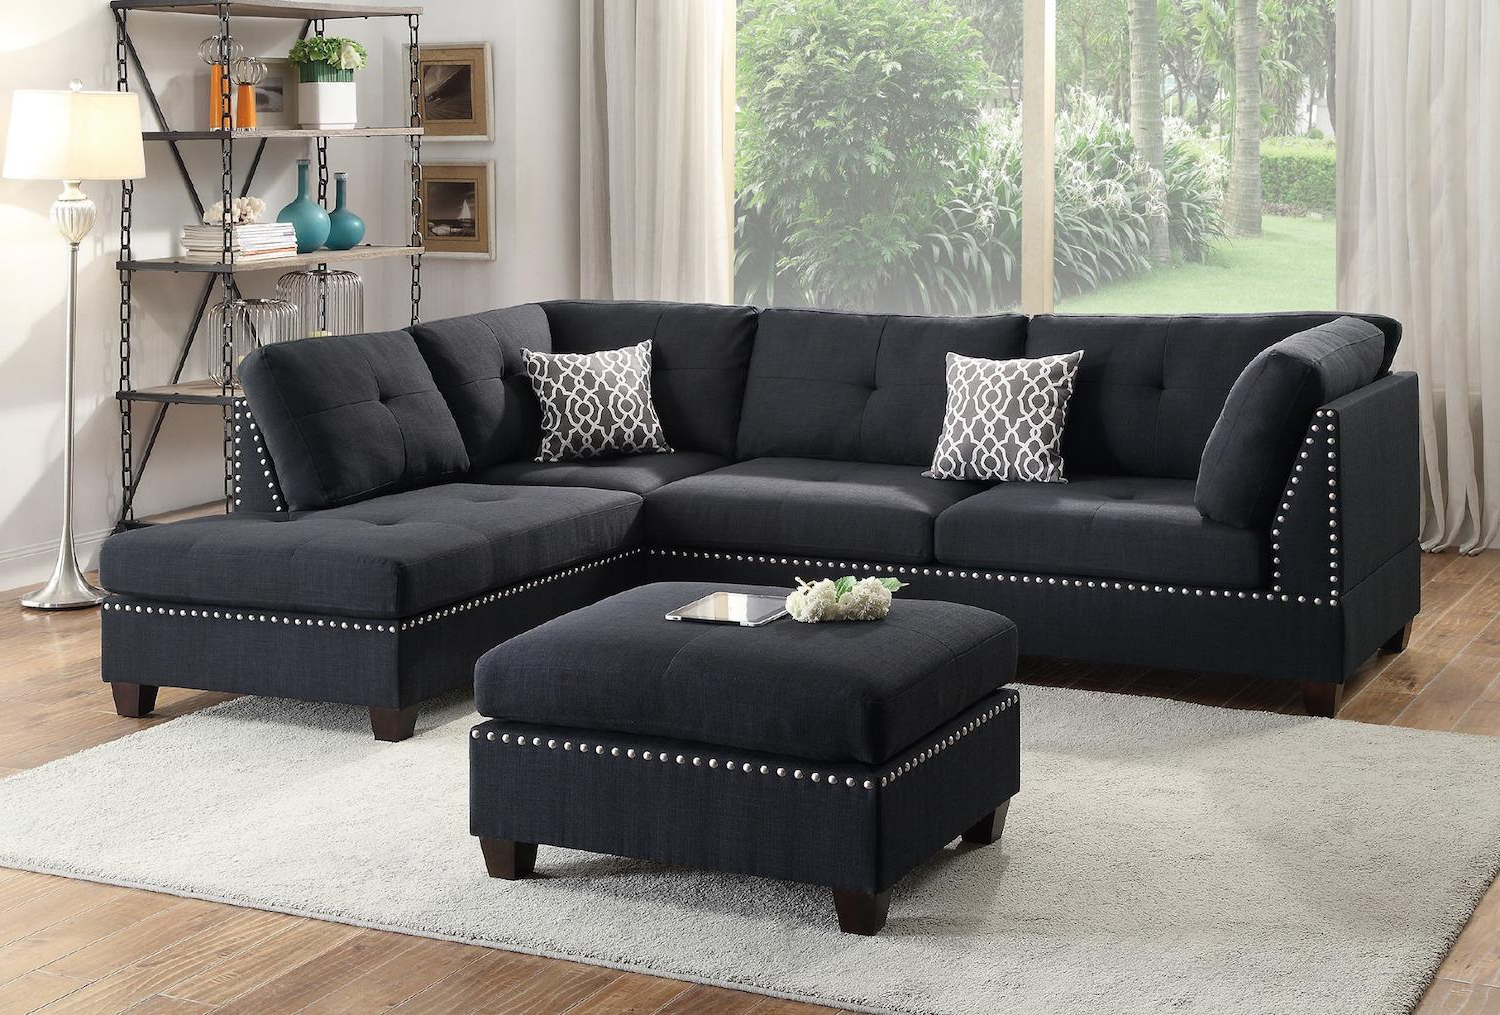 Reversible Sectional Sofas Reversible Espresso Leather Pertaining To Most Up To Date Felton Modern Style Pullout Sleeper Sofas Black (View 6 of 25)